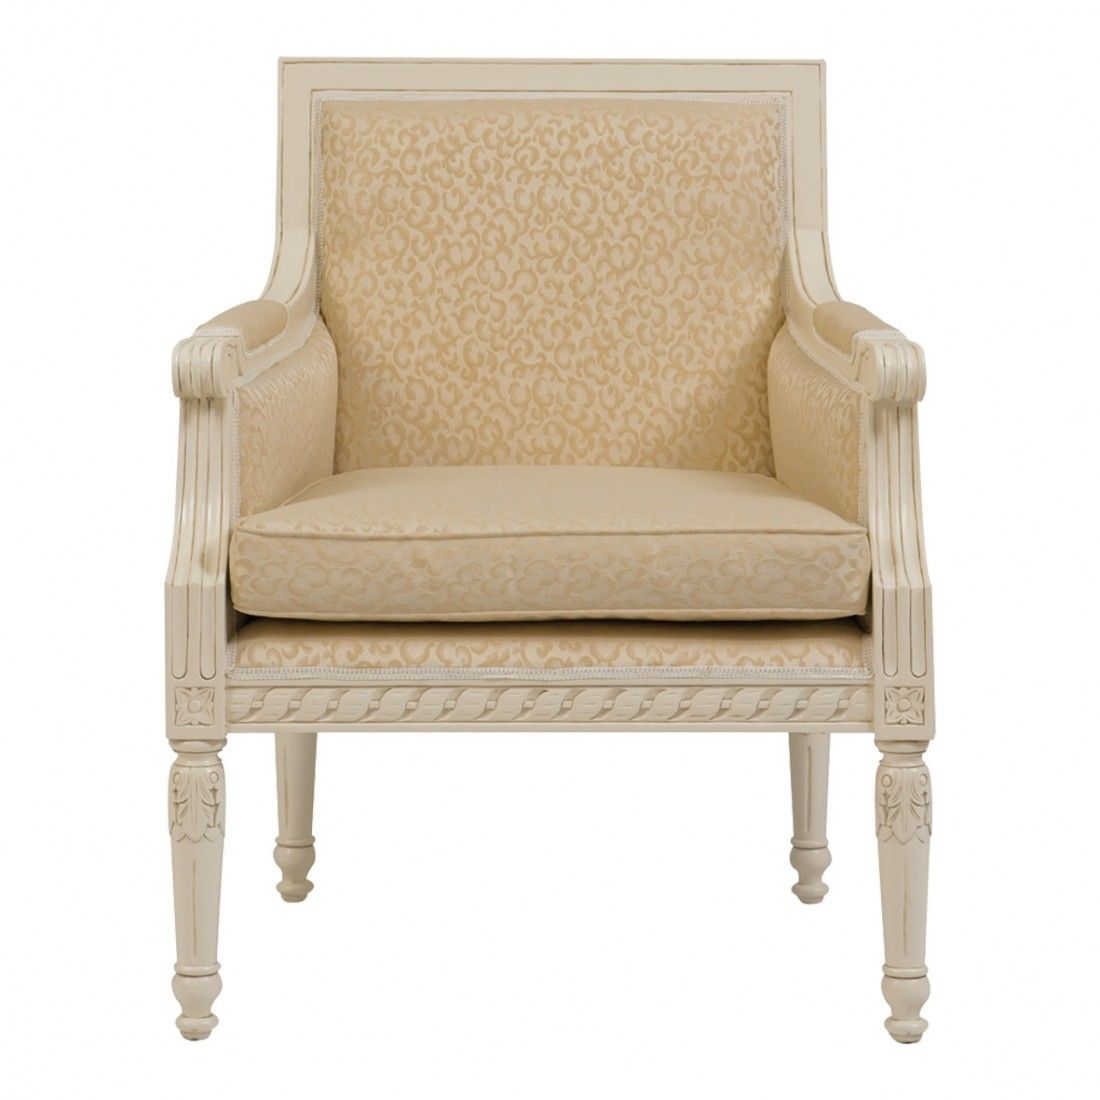 Home Goods Accent Chairs Accent Chair Decor Accent Chairs Chair